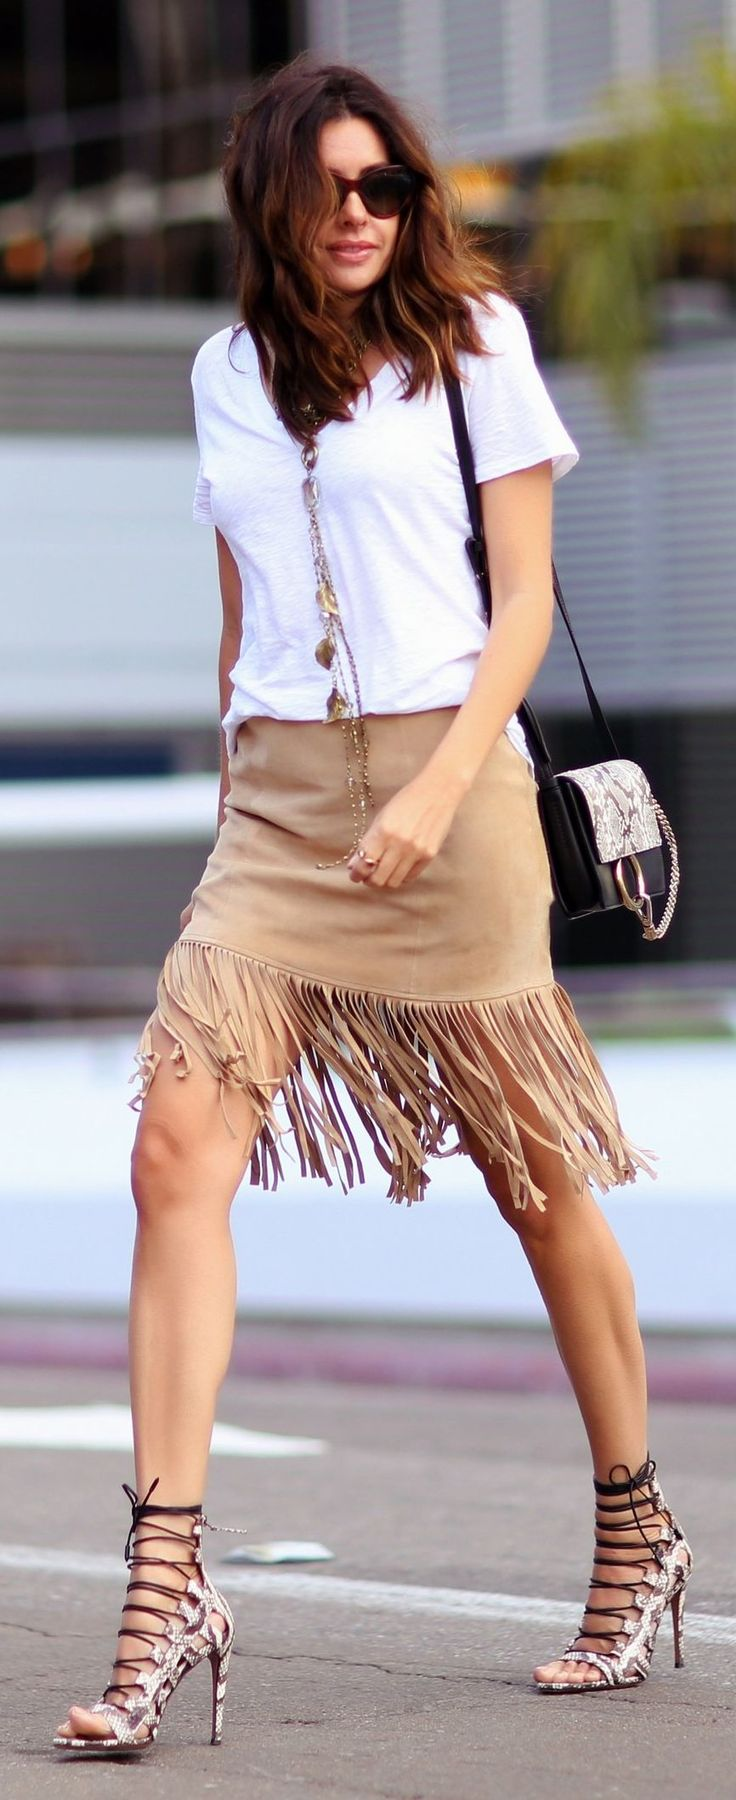 Fringed Suede Skirt Streetstyle